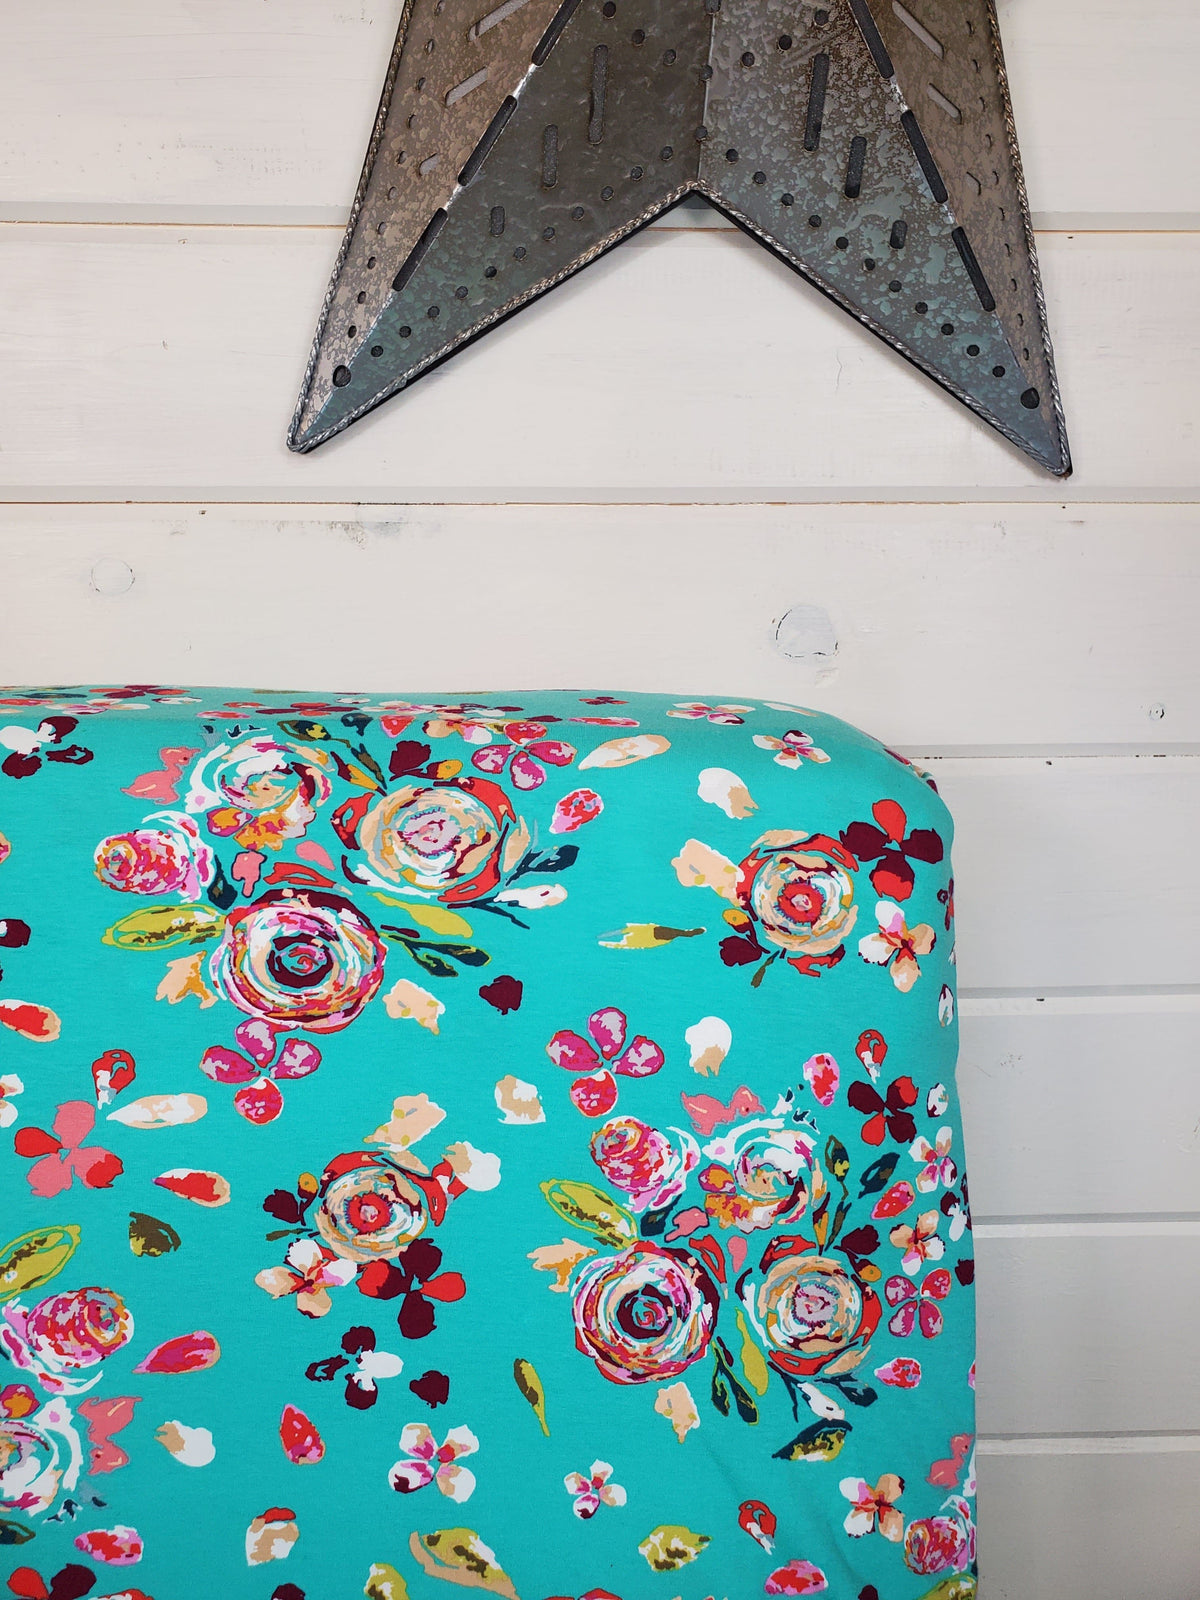 Fitted Sheet - Floral in Teal Floral : All Bed Sizes